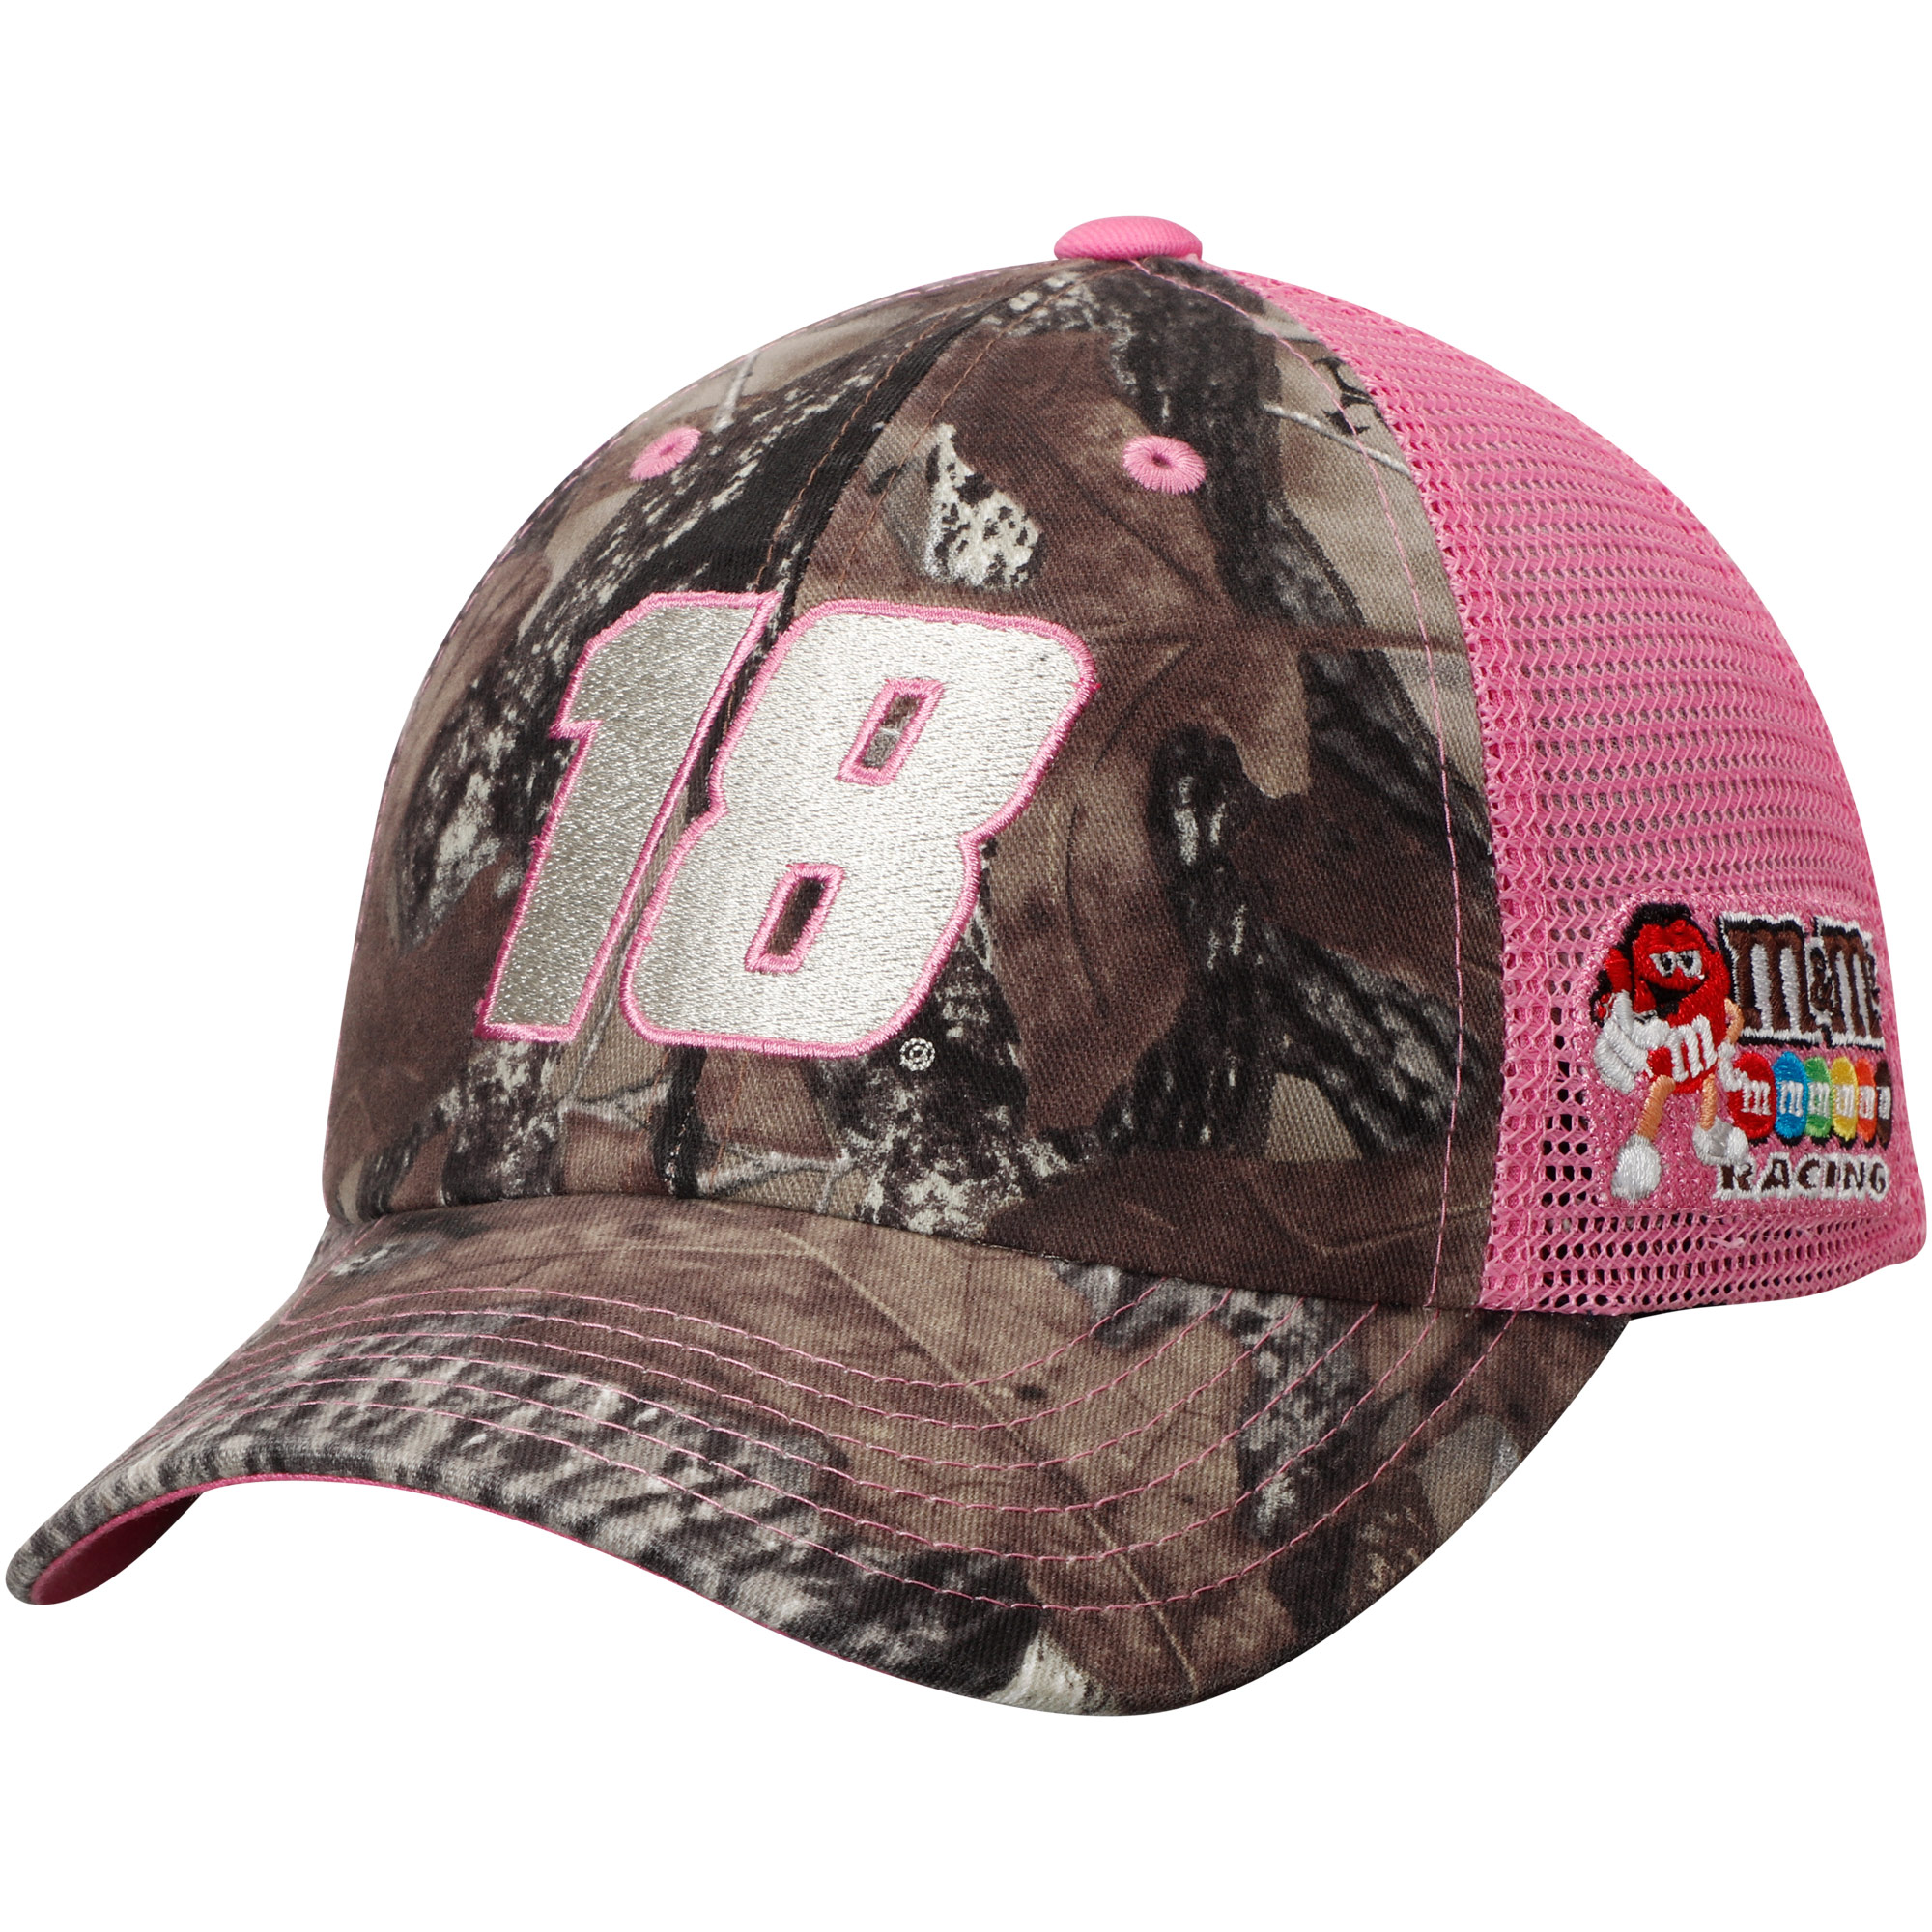 Kyle Busch Checkered Flag Girls Youth True Timber Pretty 'N Pink Adjustable Hat - Camo/Pink - OSFA